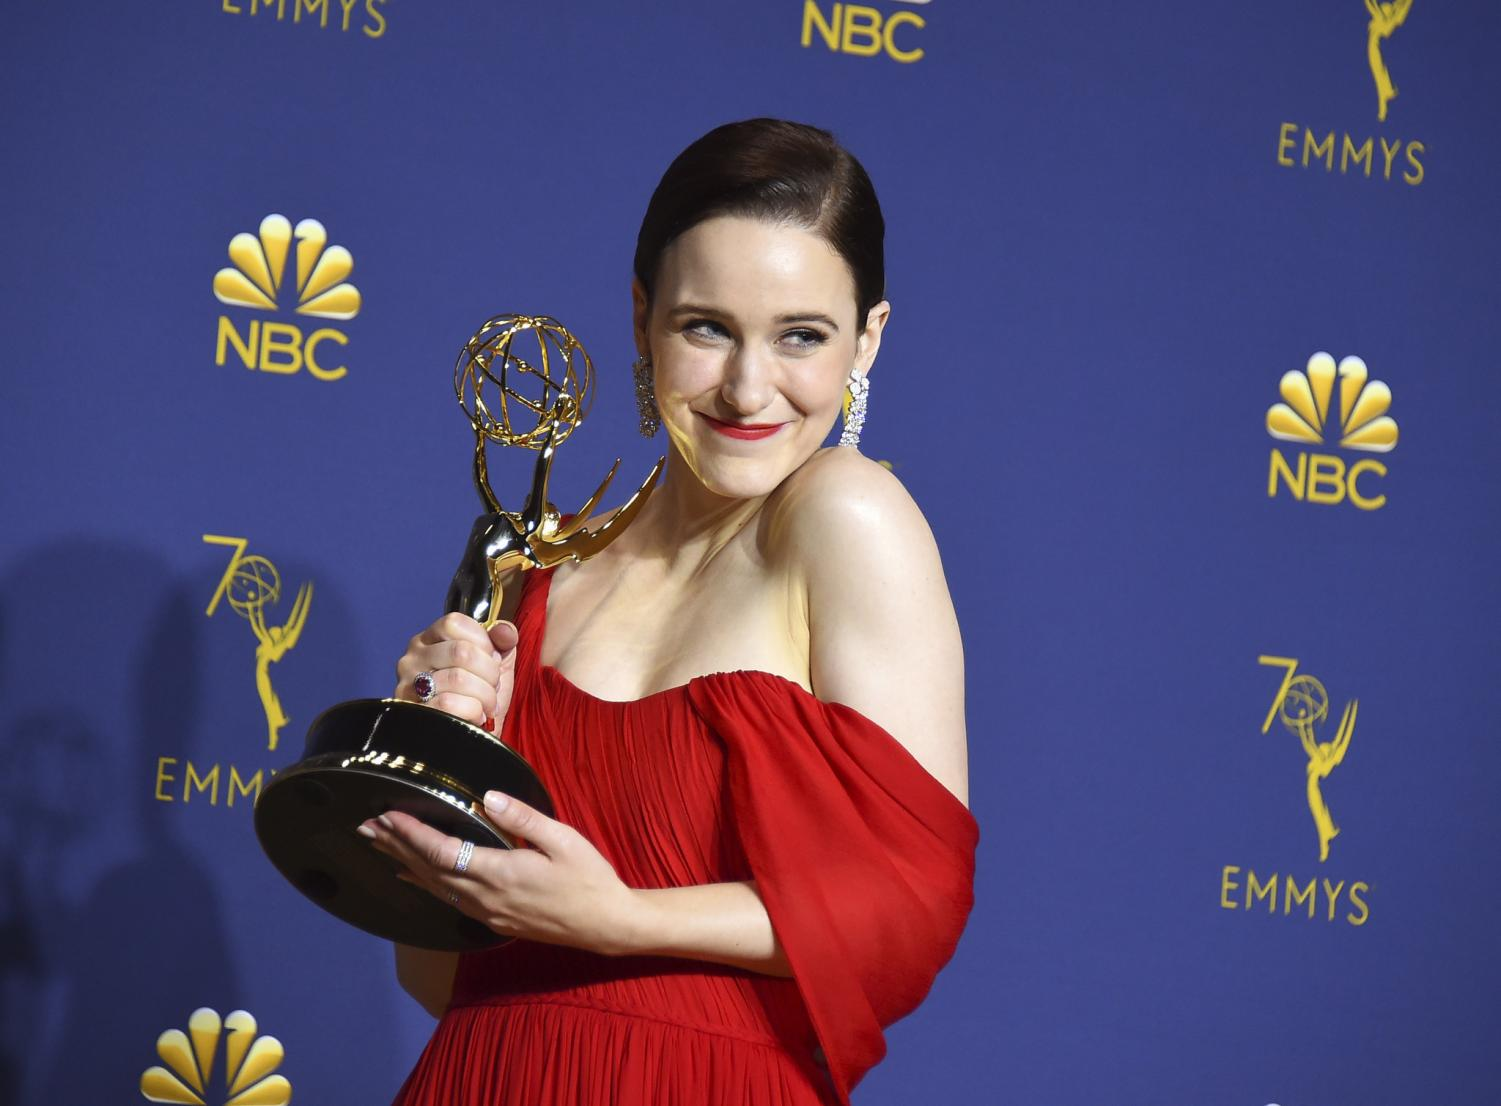 Rachel Brosnahan, star of The Marvelous Mrs. Maisel, poses with her award for Outstanding Lead Actress. This is on of the many awards The Marvelous Mrs. Maisel received at the 70th Annual Primetime Emmy Awards.